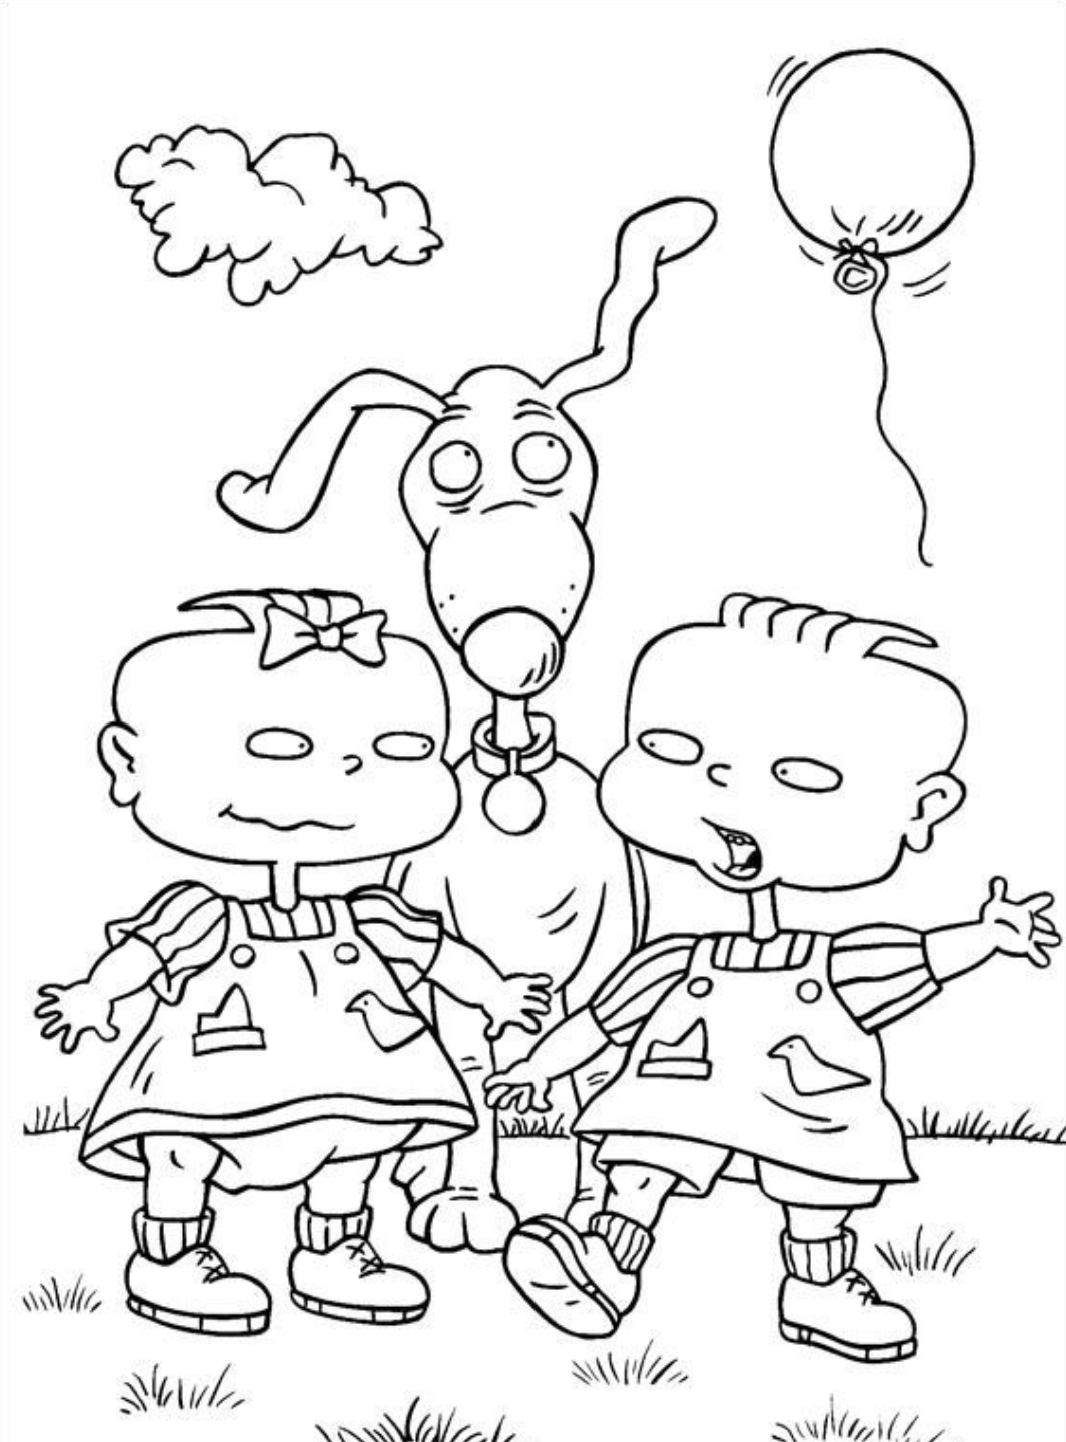 Rugrats Coloring Page Cartoon Coloring Pages Cool Coloring Pages Coloring Pages